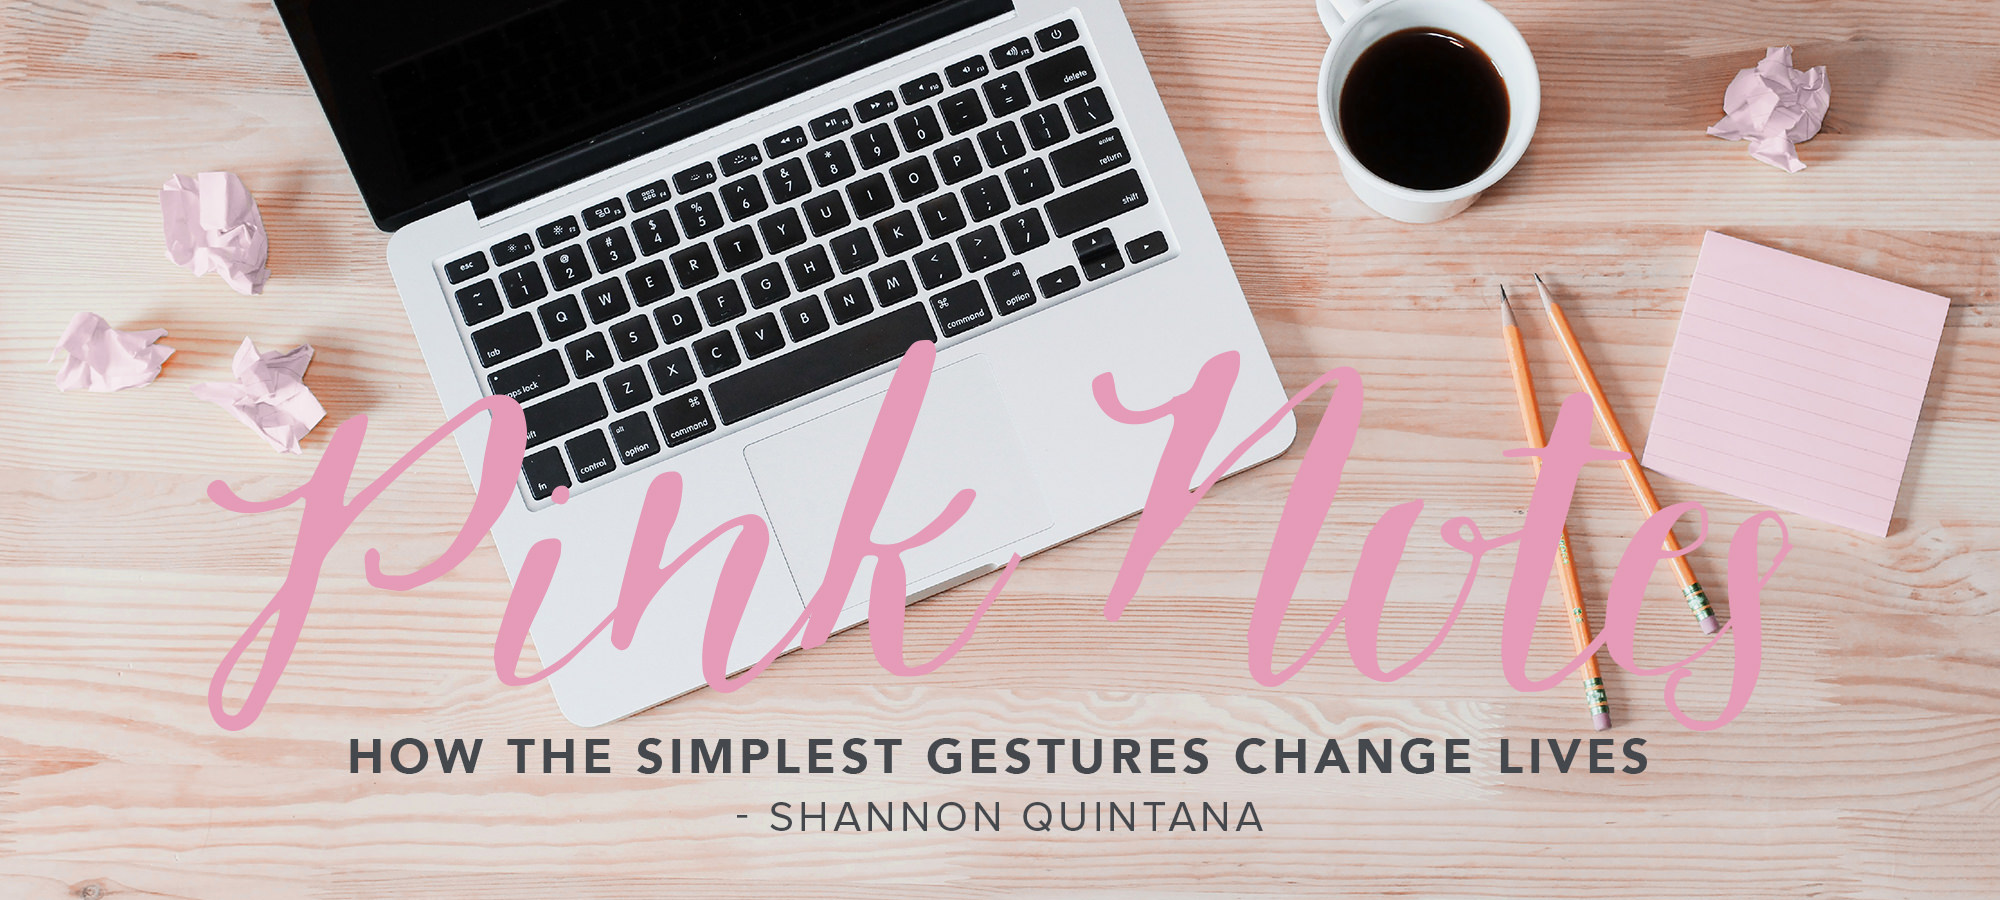 Pink Notes - How the Simplest Gestures Change Lives